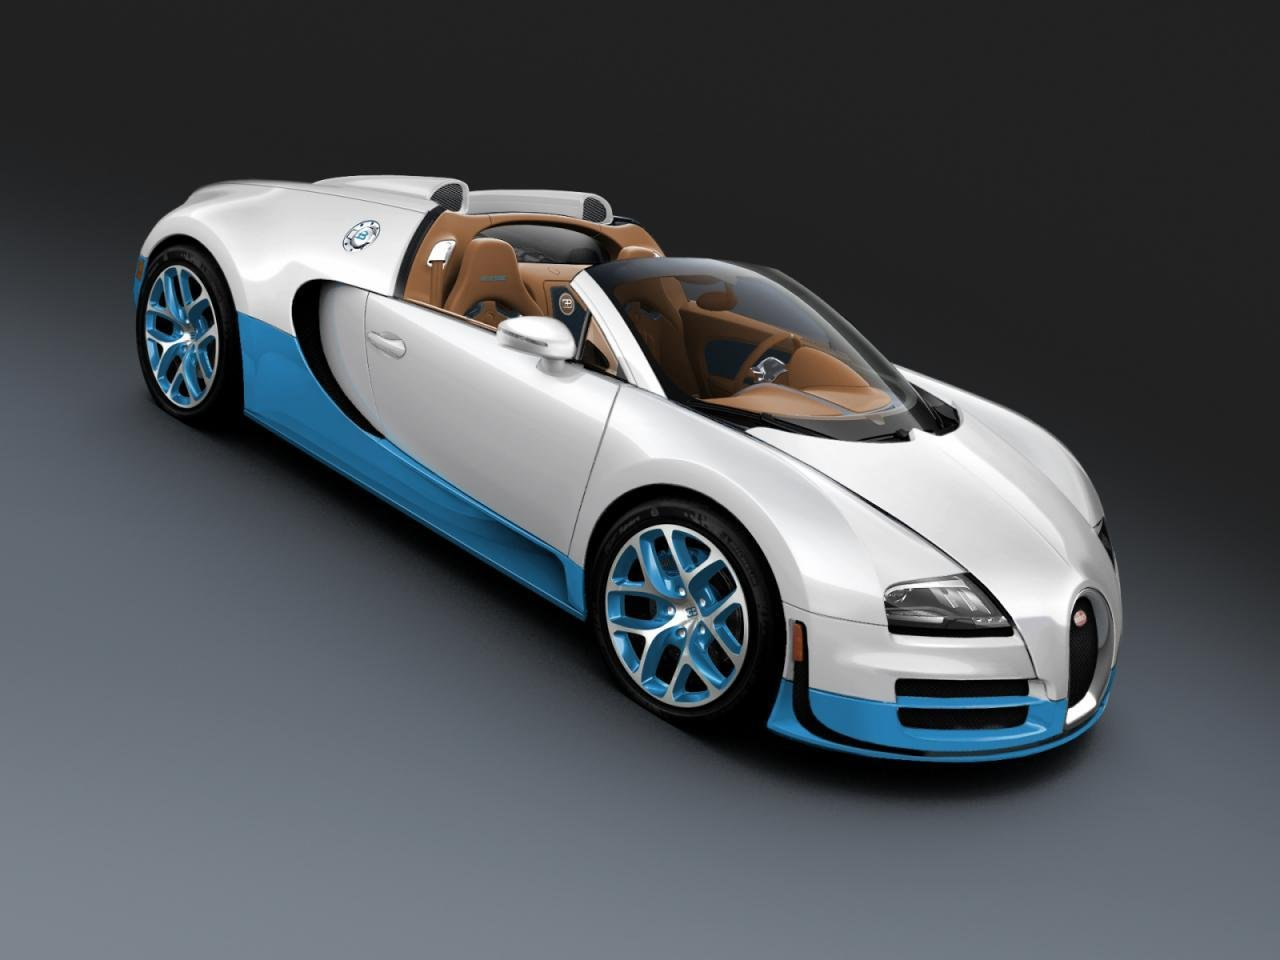 2013 bugatti veyron grand sport vitesse special edition. Black Bedroom Furniture Sets. Home Design Ideas